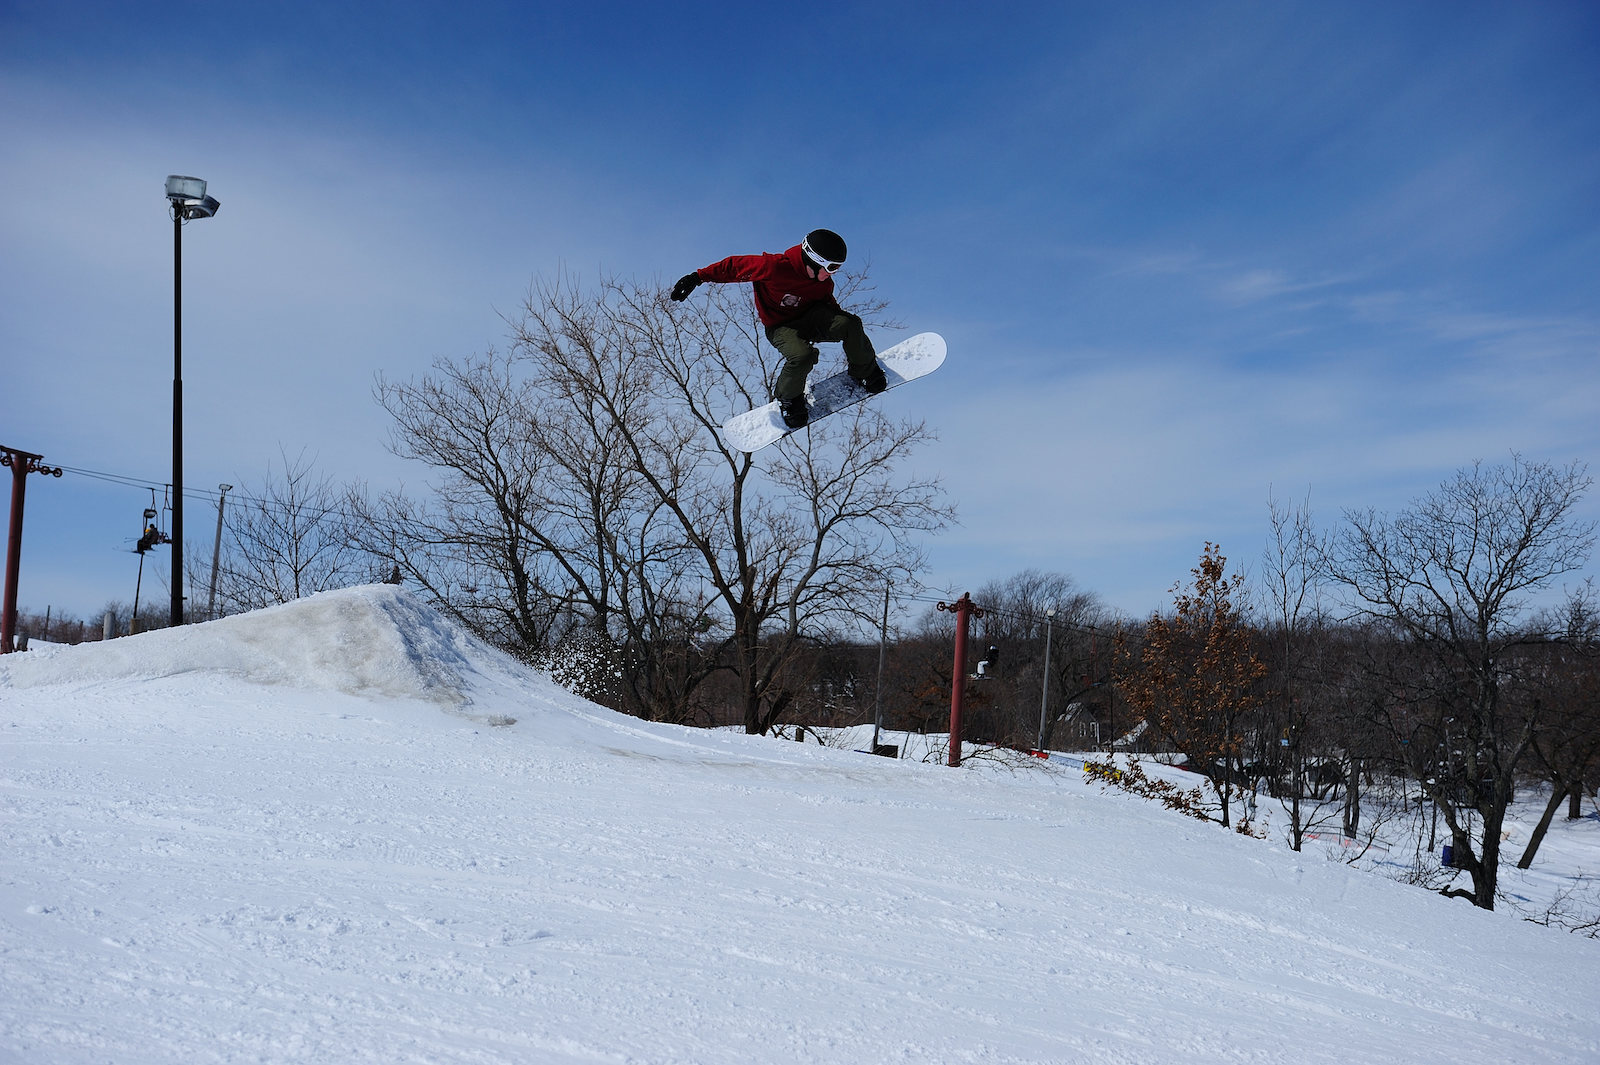 Image of a snowboarder flying through the air at Wilmot Mountain Ski Resort in Wisconsin